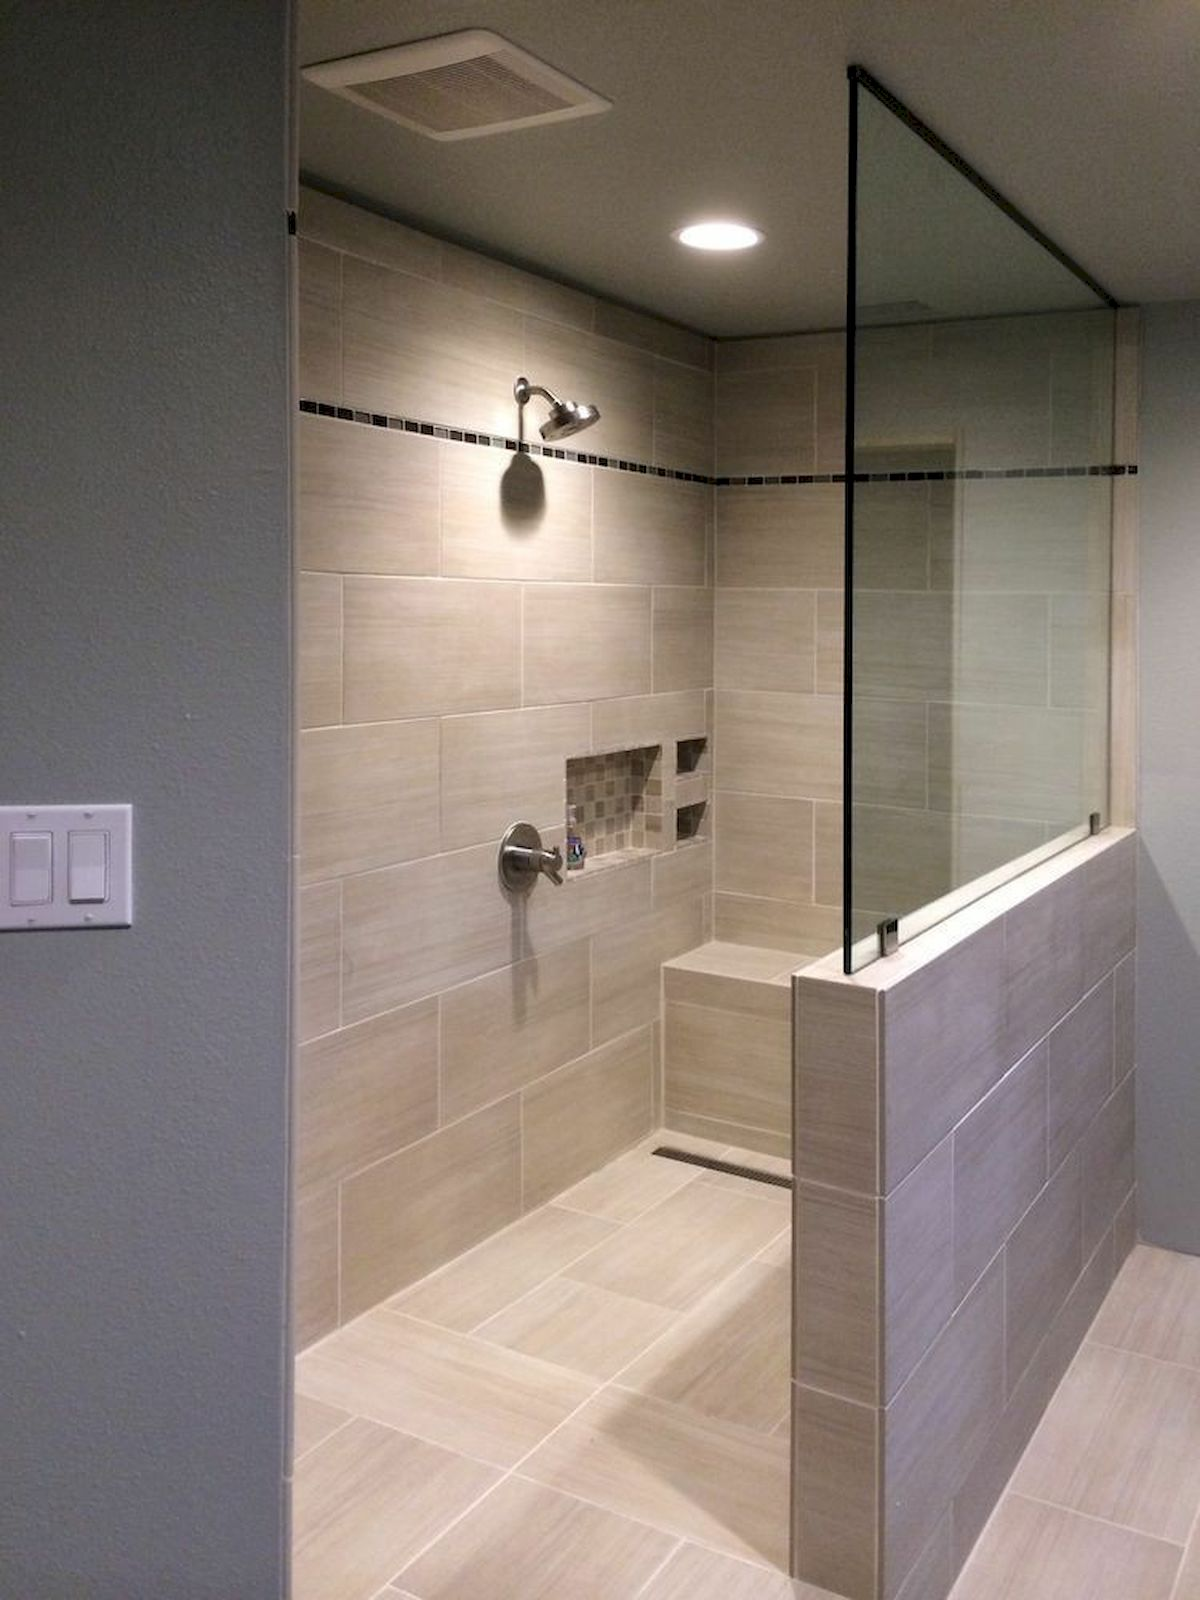 50 Cool Shower Design Ideas For Your Bathroom (2)